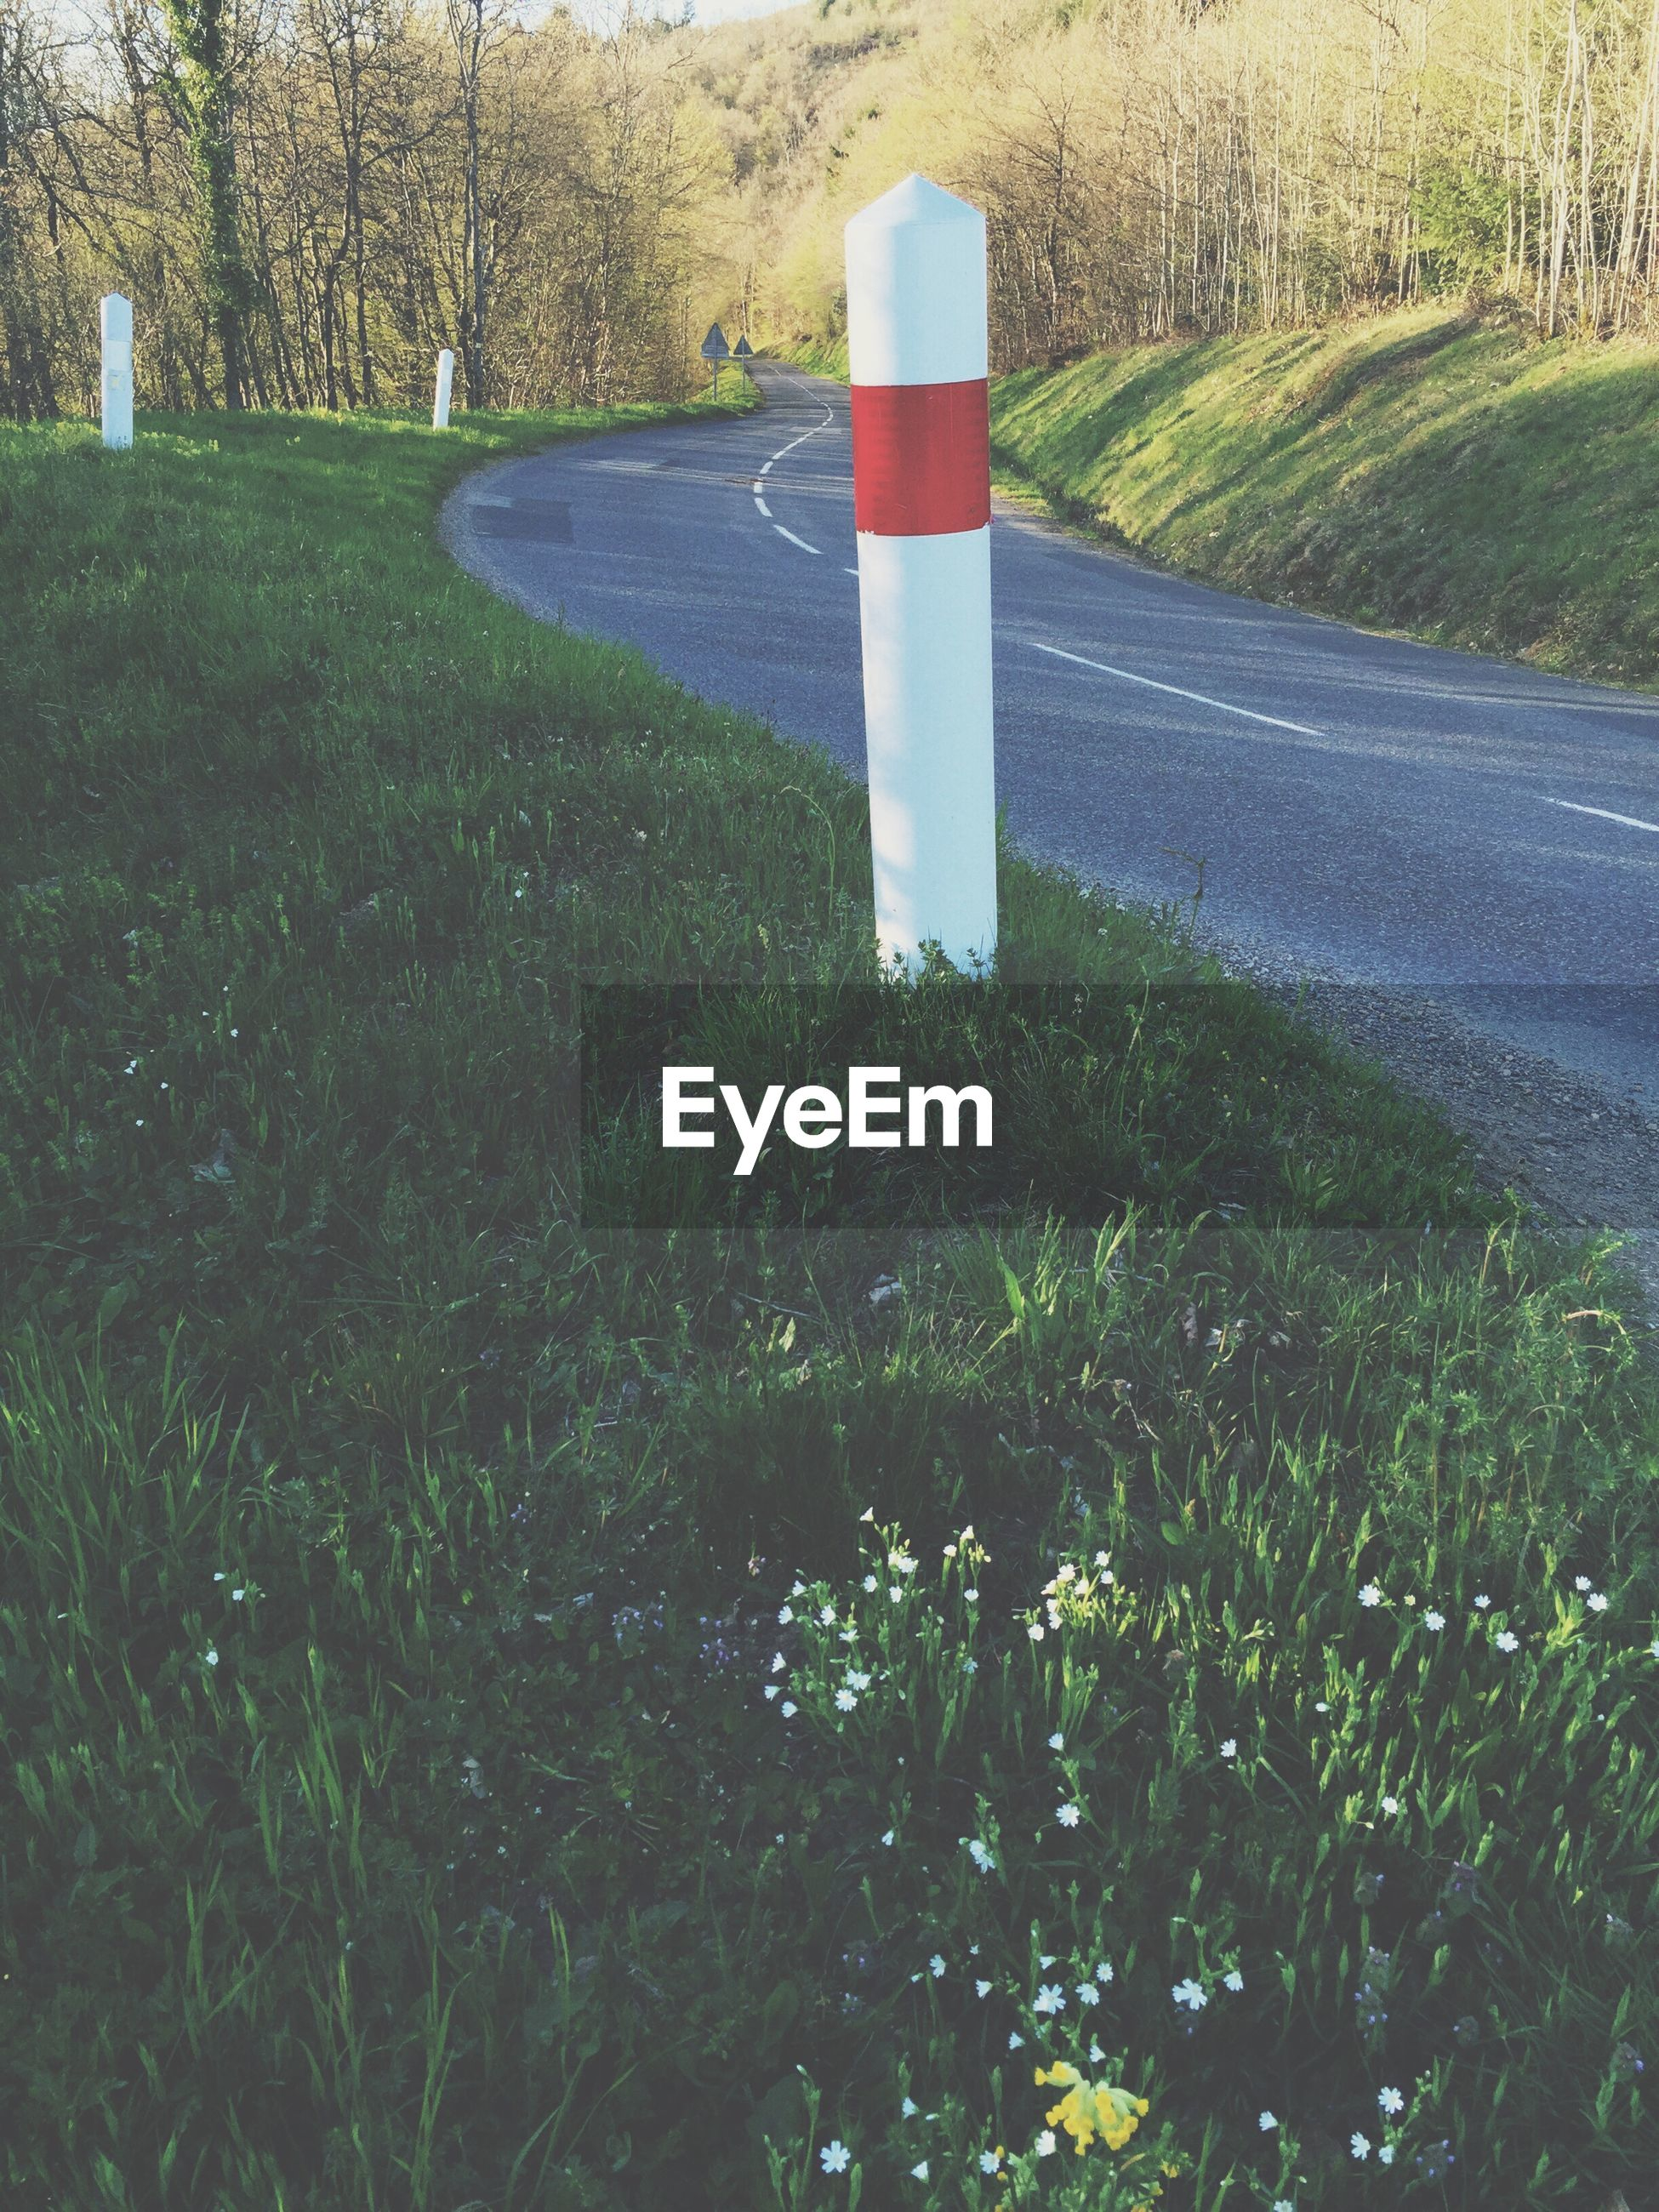 Wooden post on grassy field by road